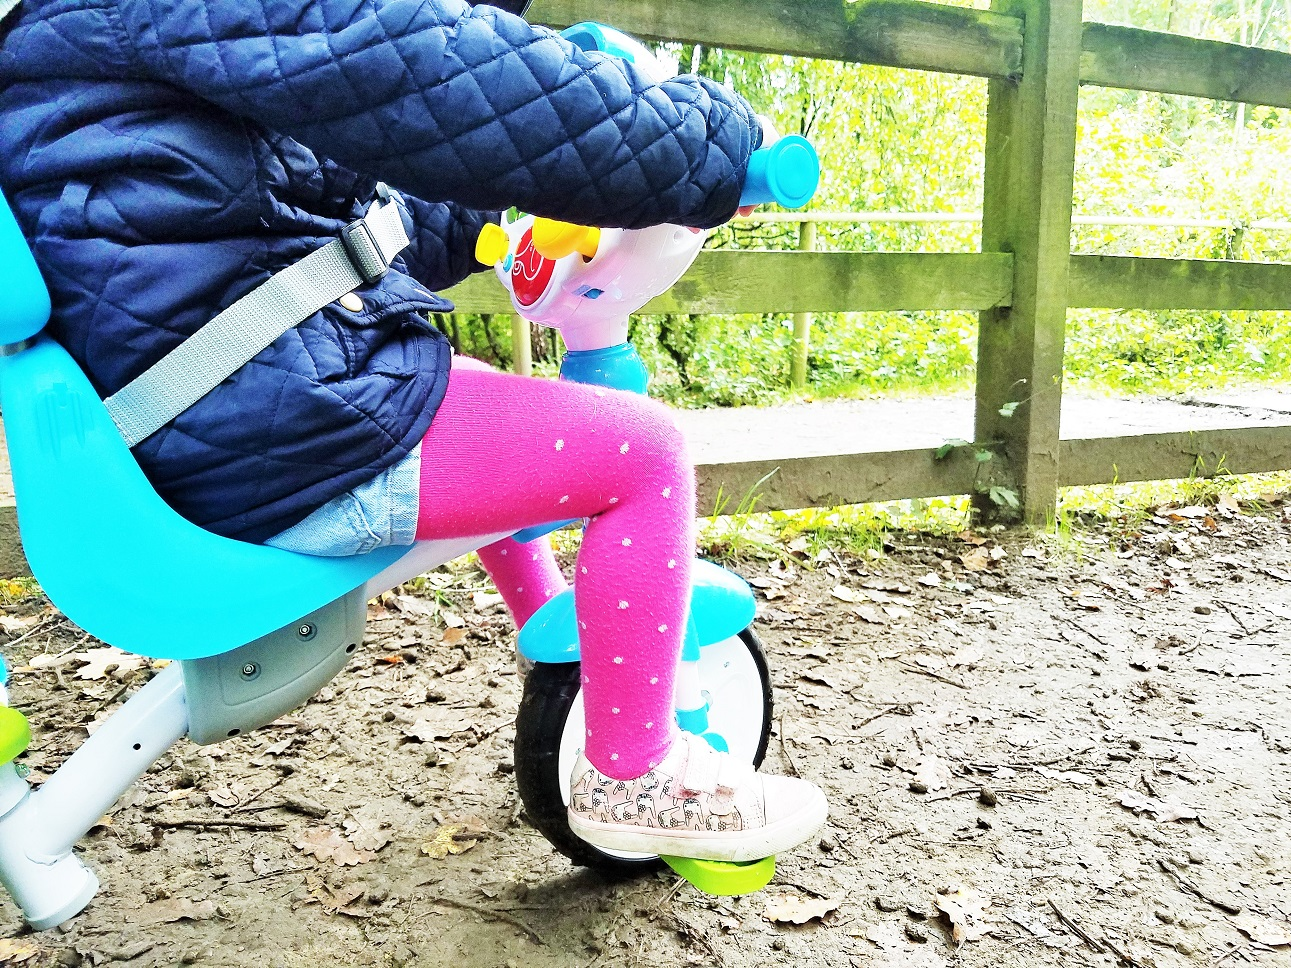 Vtech 5-in1 trike copes well in the mud